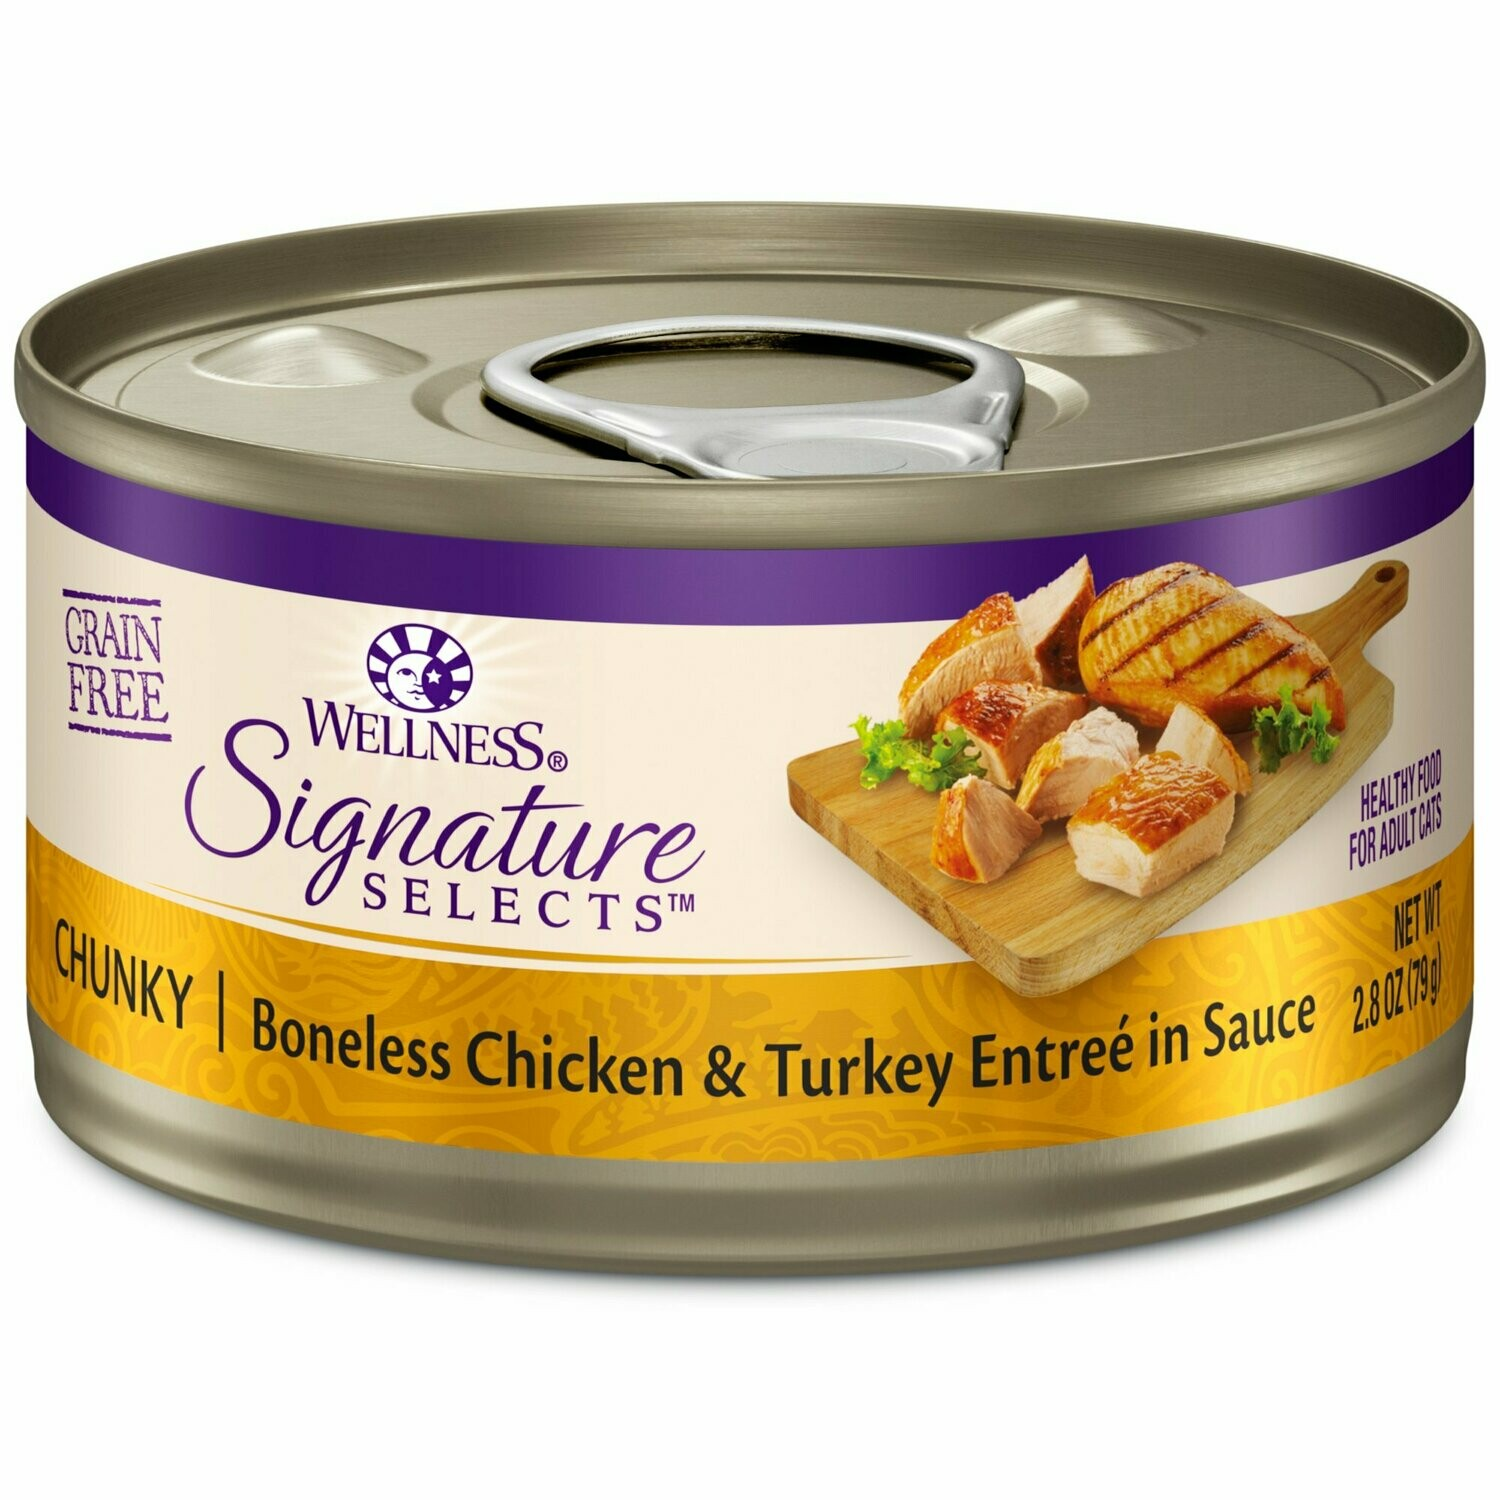 Wellness CORE Signature Selects Natural Grain Free Wet Canned Cat Food, Chunky Tukey 2.8 oz 12 count (10/19) (A.J3)